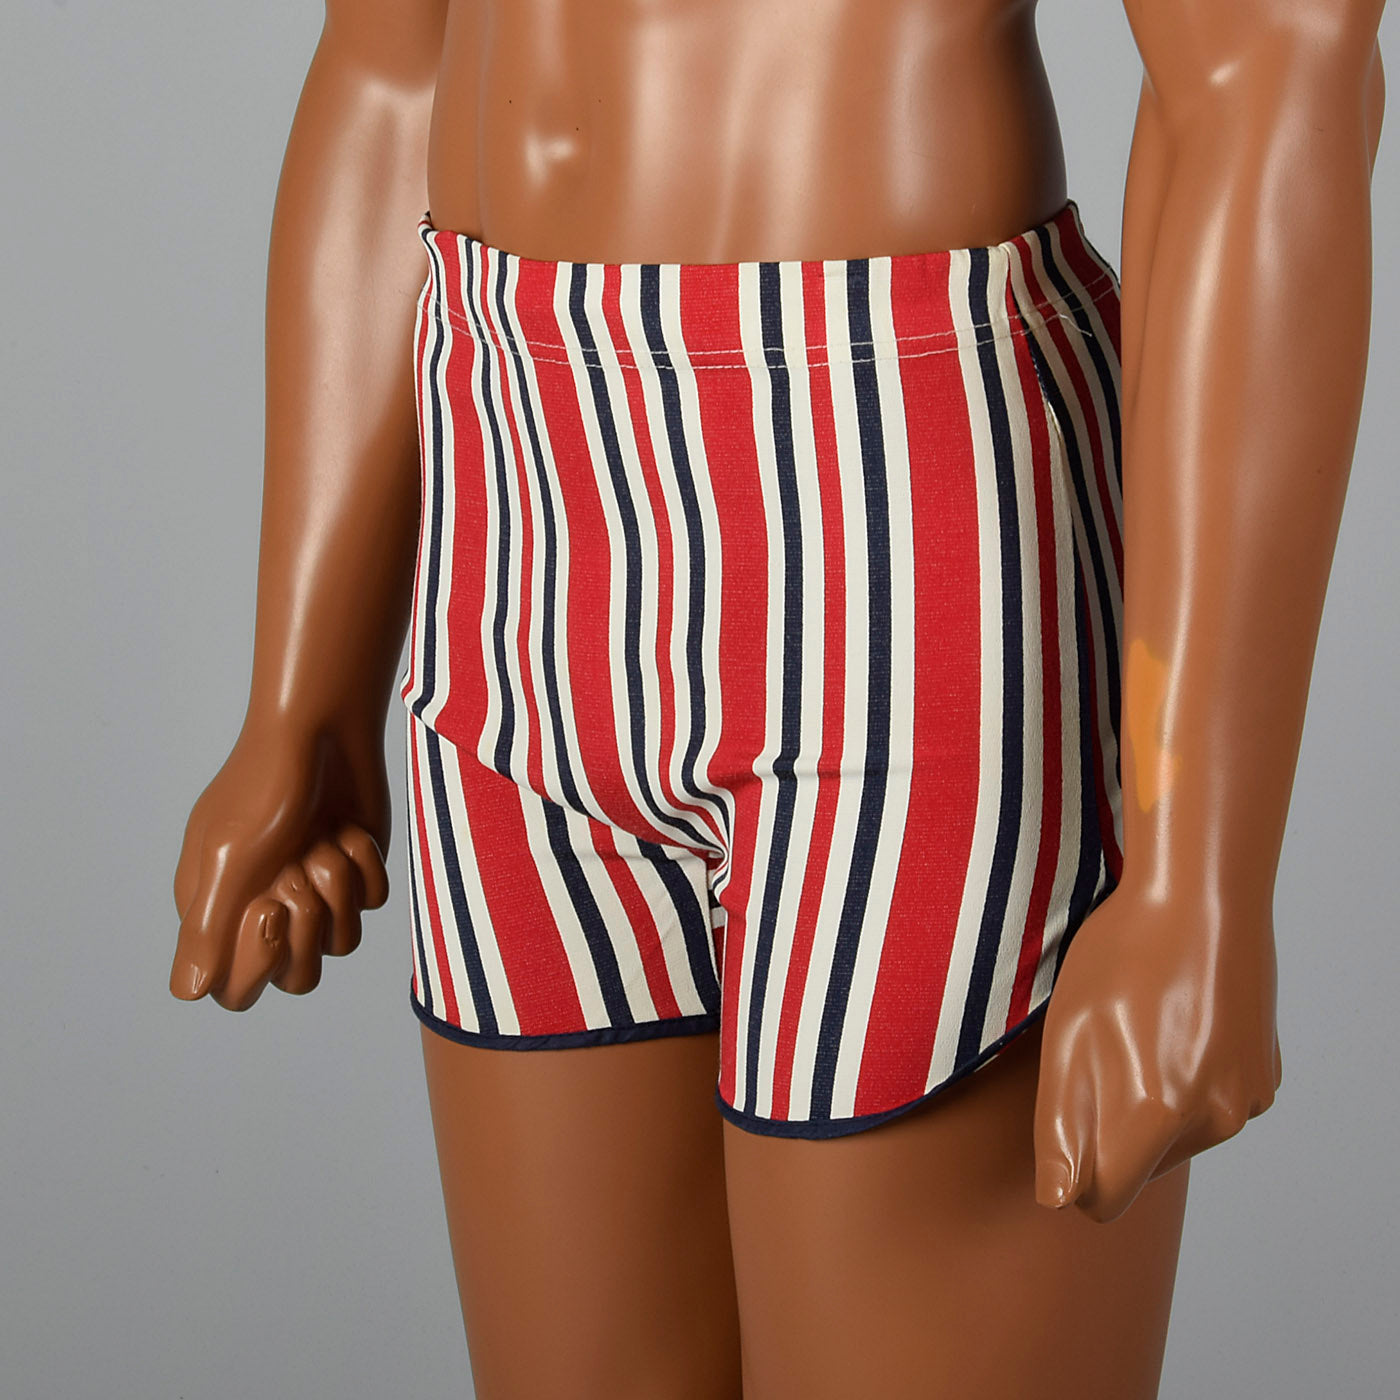 1960s Mens Swim Trunks in Red White & Blue